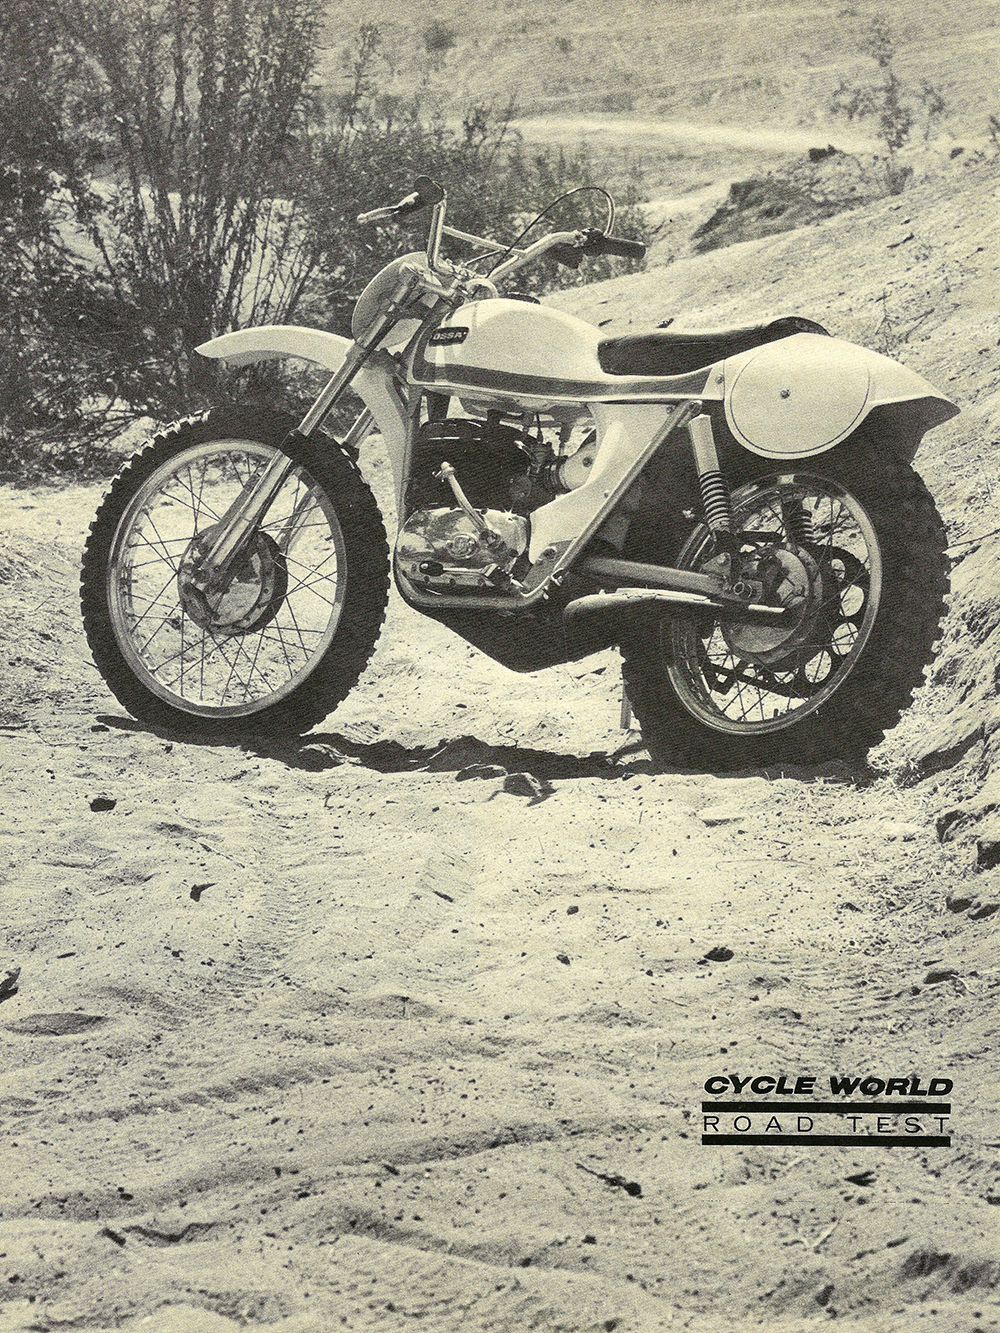 1970 Ossa 250 Stiletto road test 01.jpg